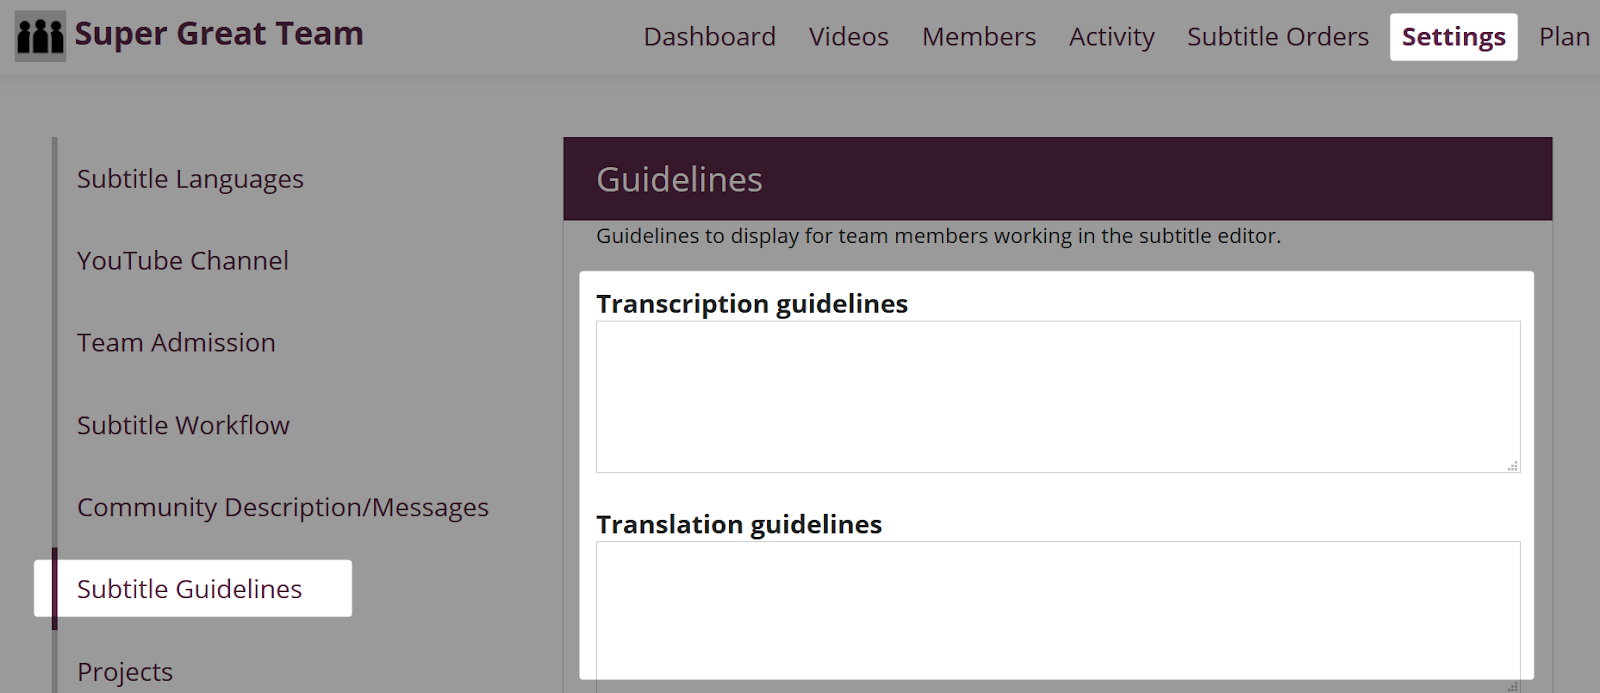 Subtitle Guidelines page in Settings for an Amara Community team.